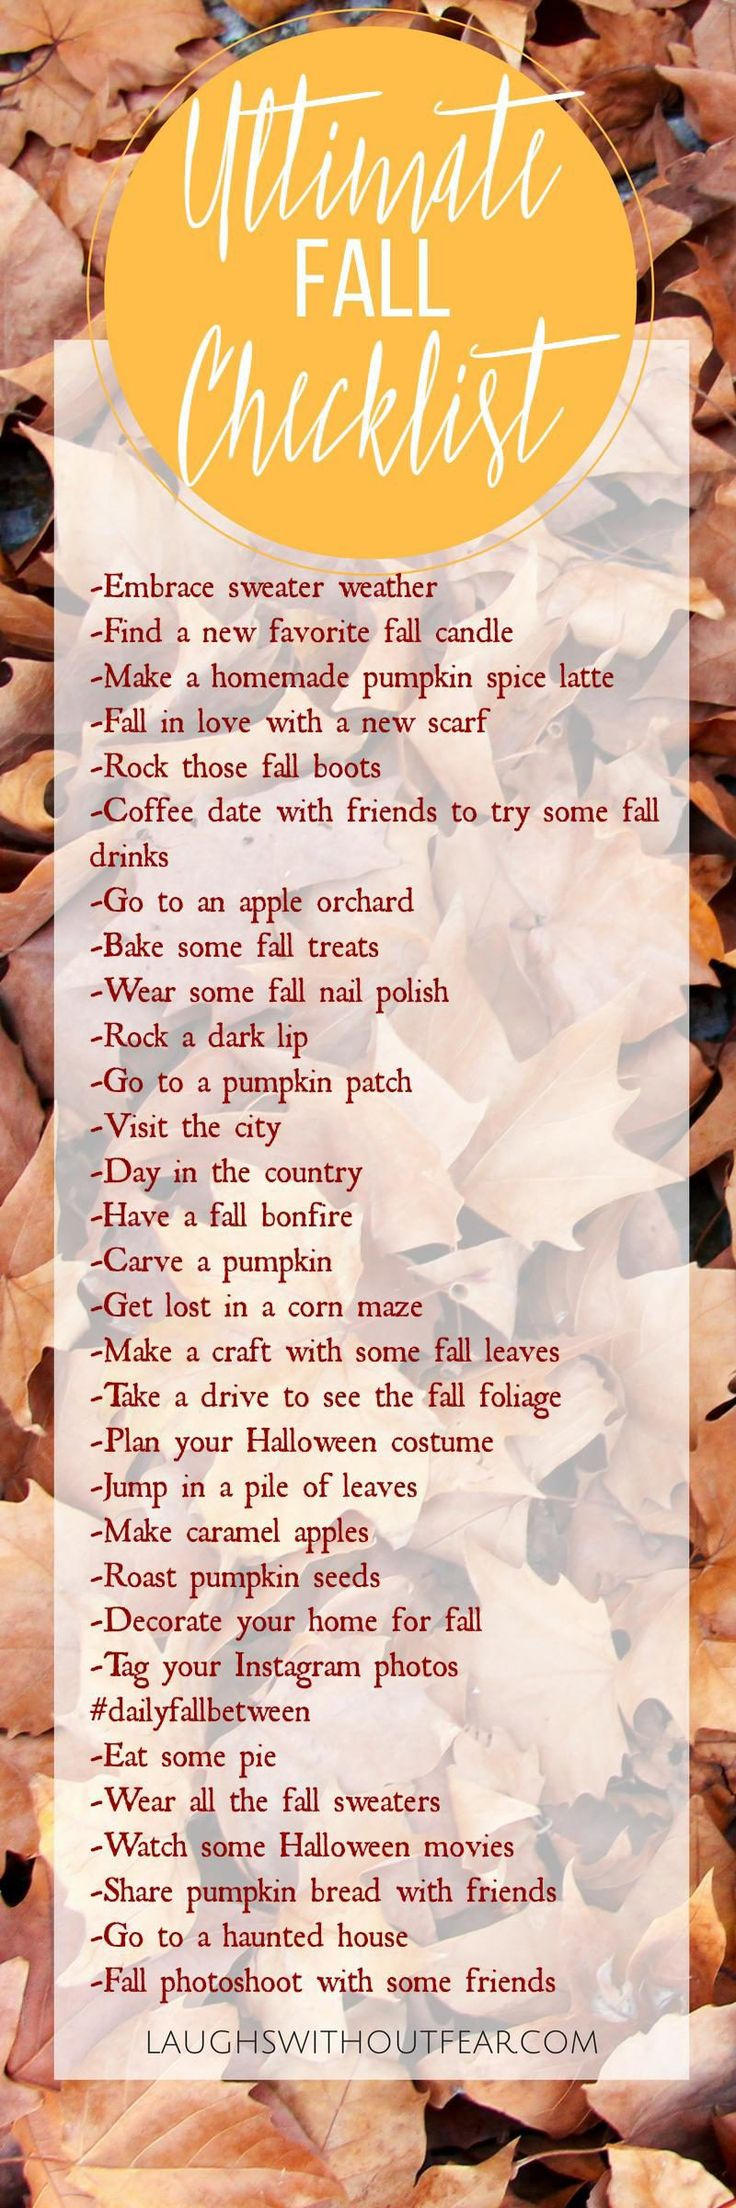 Sometimes it's hard to keep track of all the wonderful things fall has to offer in the midst of a busy schedule.  Fall isn't over though!  How many of these can you cross off the checklist this season?